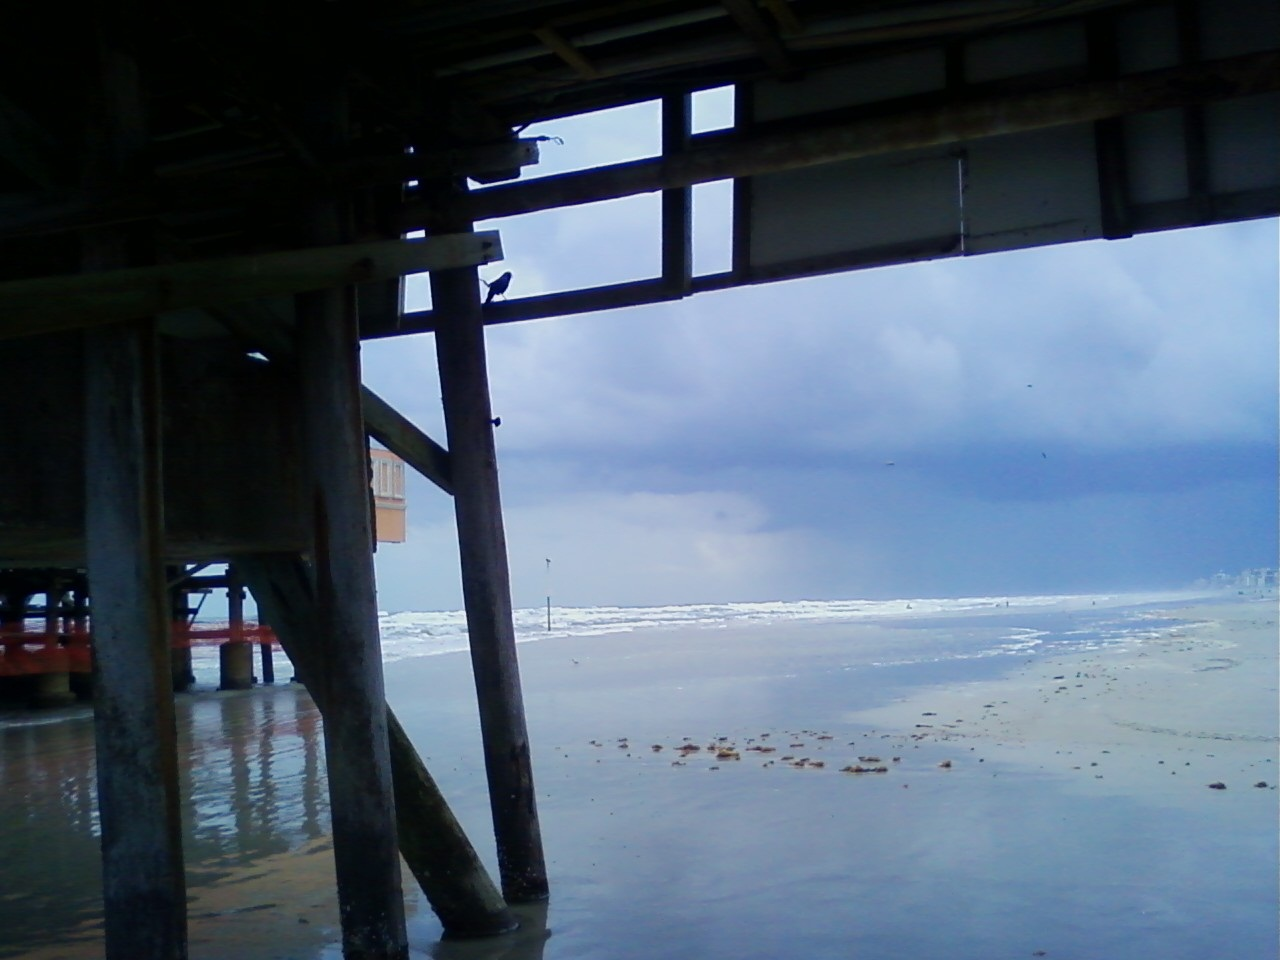 A Stormy Day Or Rather Rain Squalls T Storms In The Distance During Variable Weather As Seen From Underneath Daytona Beach Pier Also